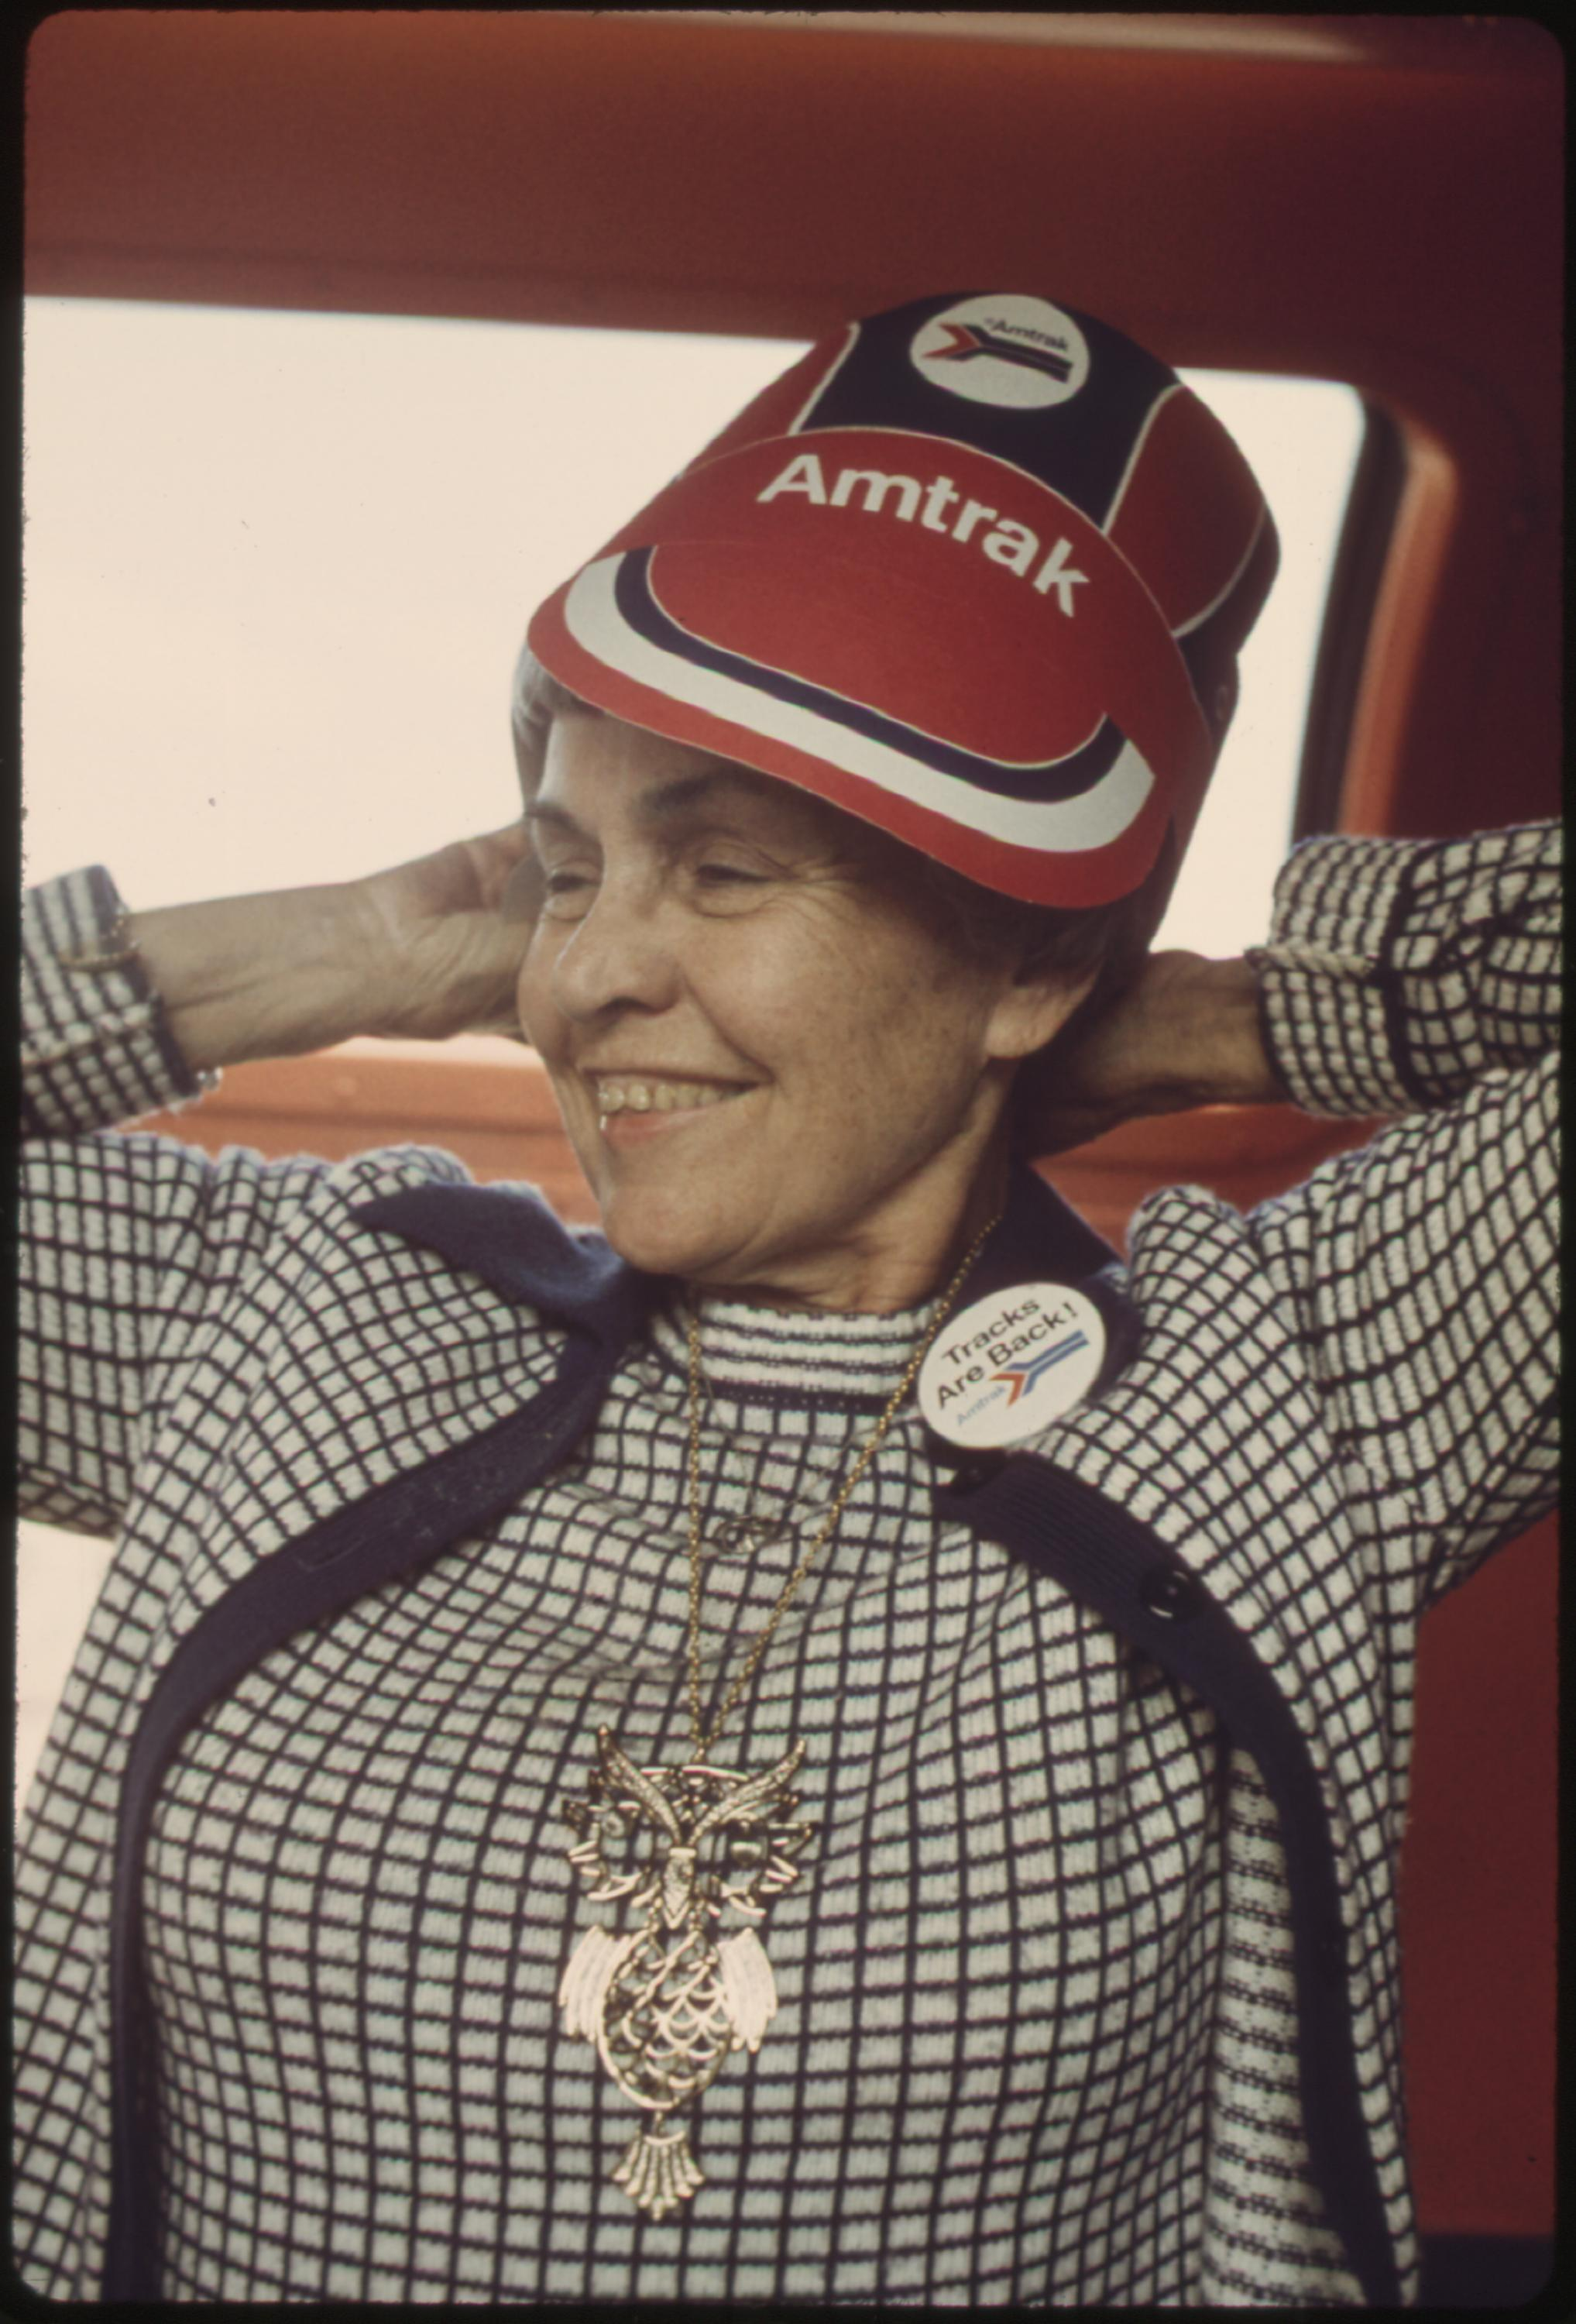 An Amtrak eyeshade and a Tracks are Back! pin are worn by a passenger on the Southwest Limited train enroute between Albuquerque, New Mexico, and Dodge City, Kansas, June 1974